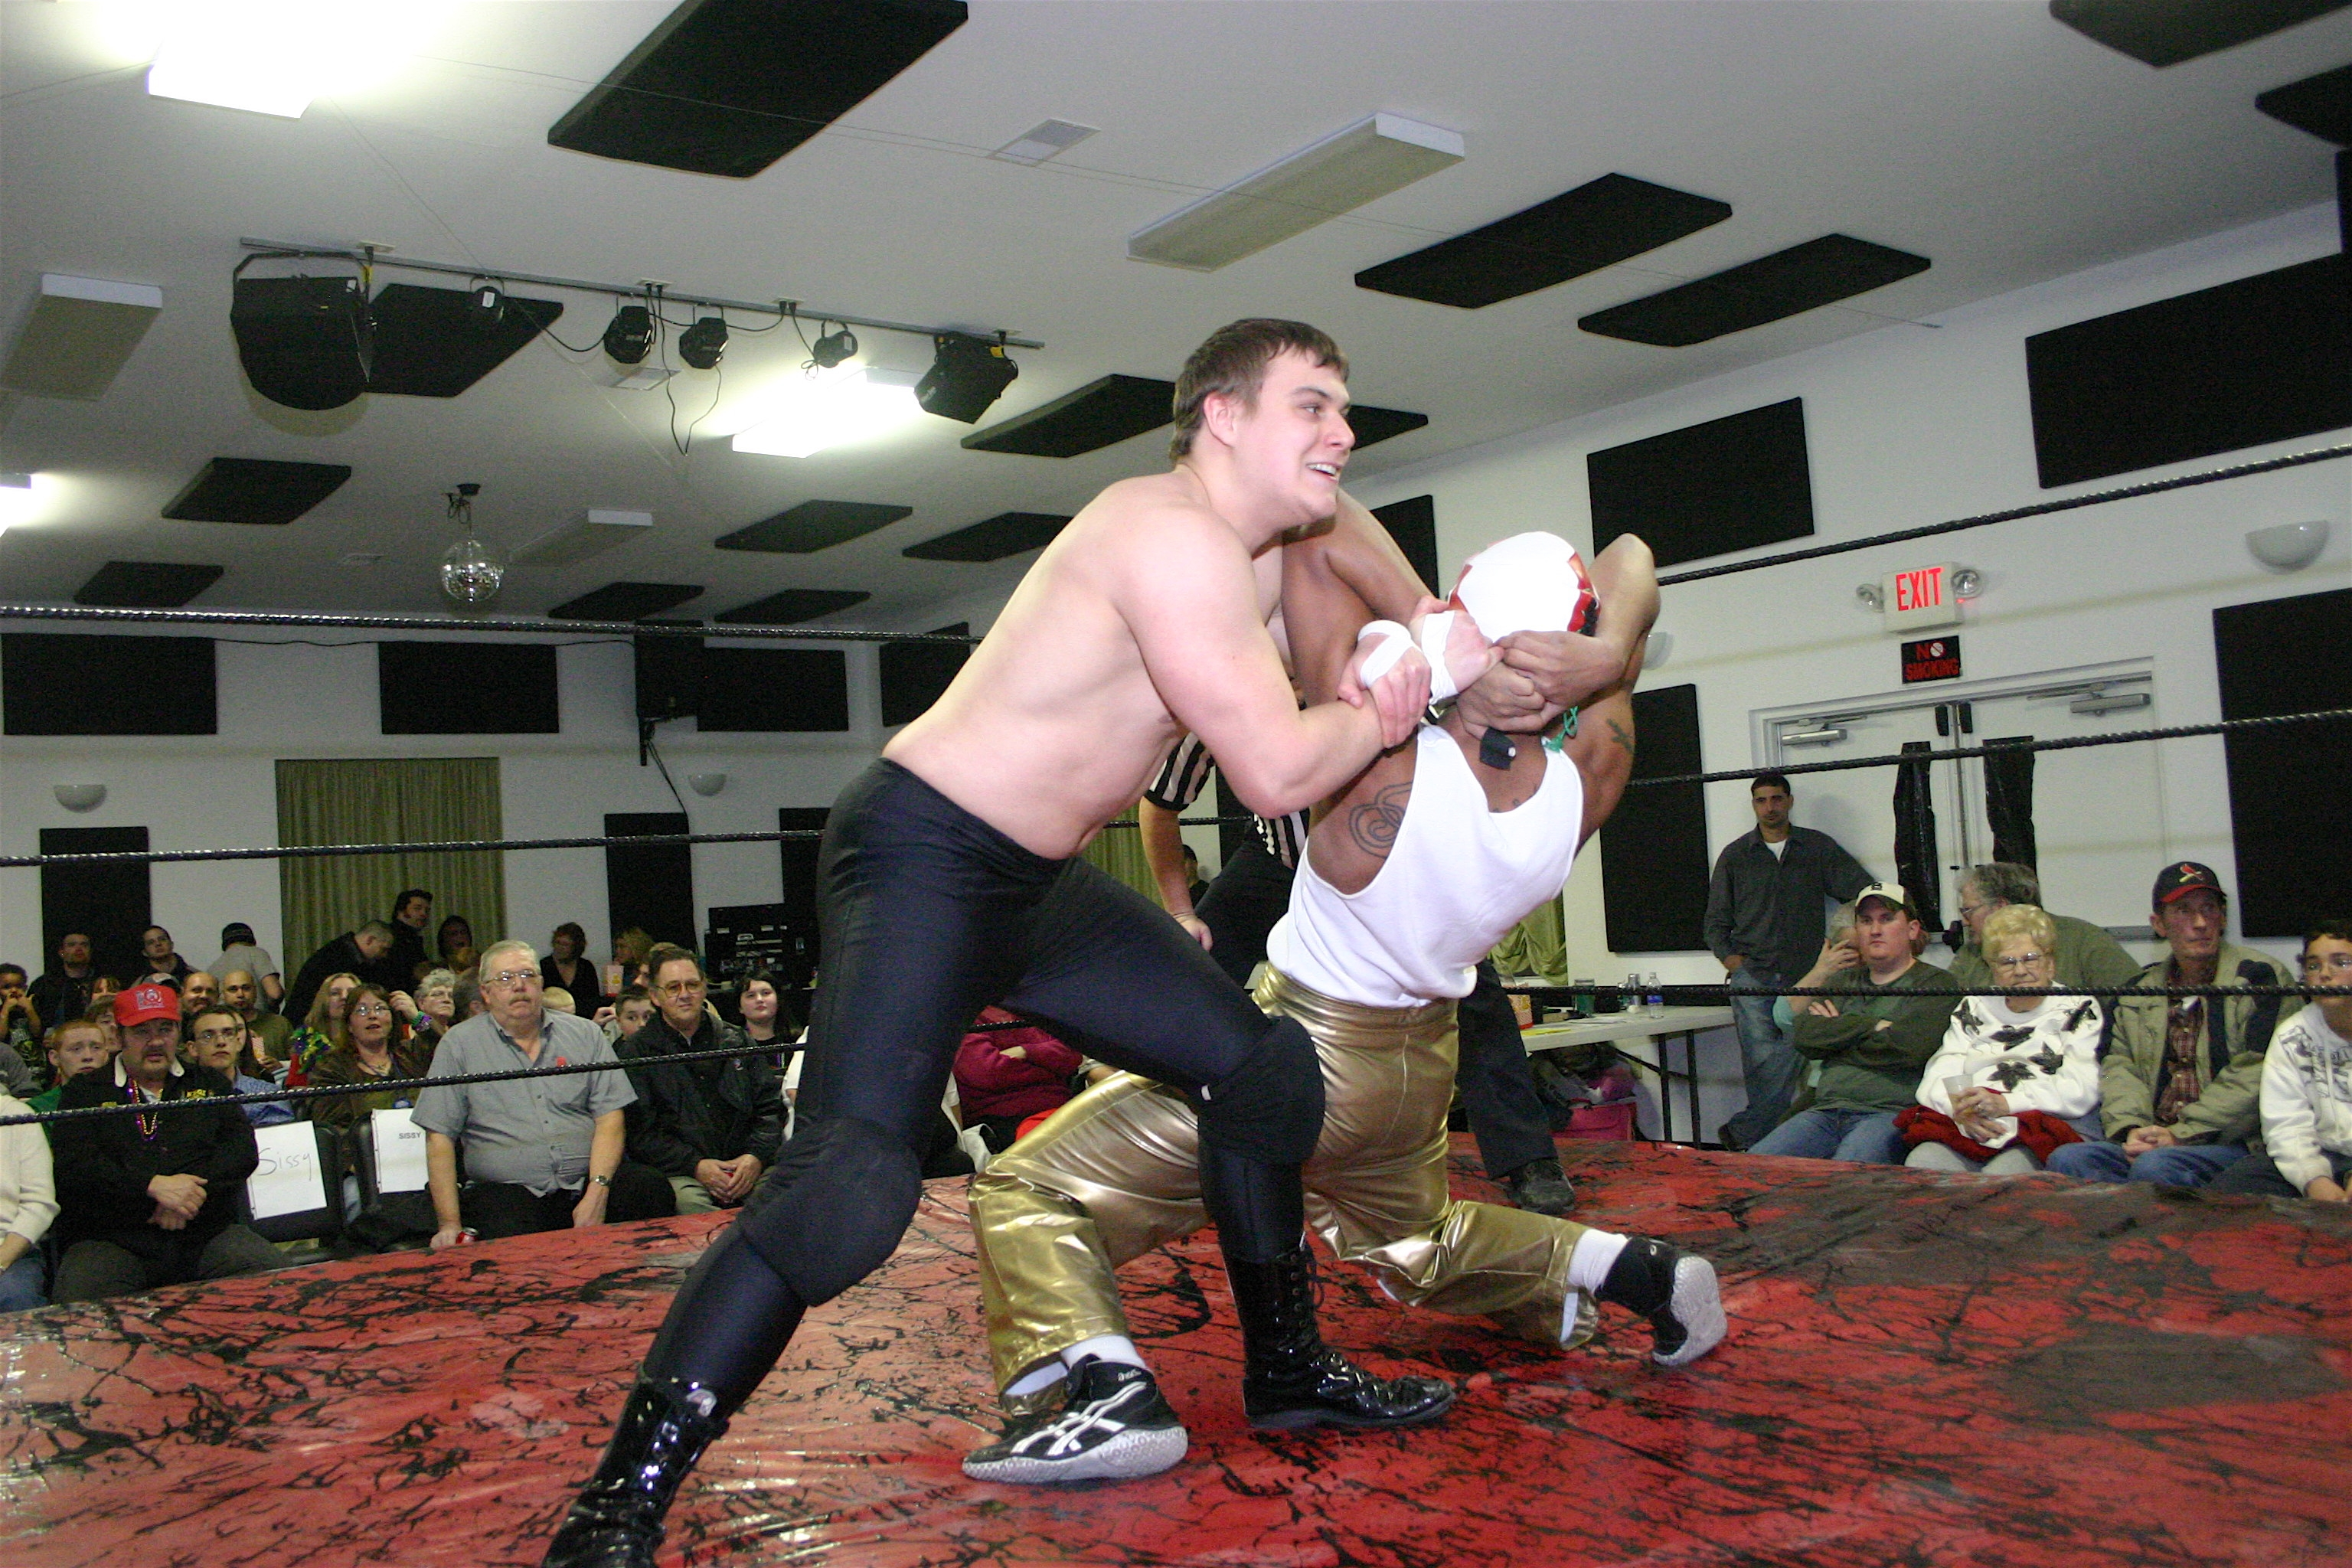 Junior Heavyweight Champion Dave Vaughn and Chucho have a test of strength. (Photo Credit: Michael R Van Hoogstraat)